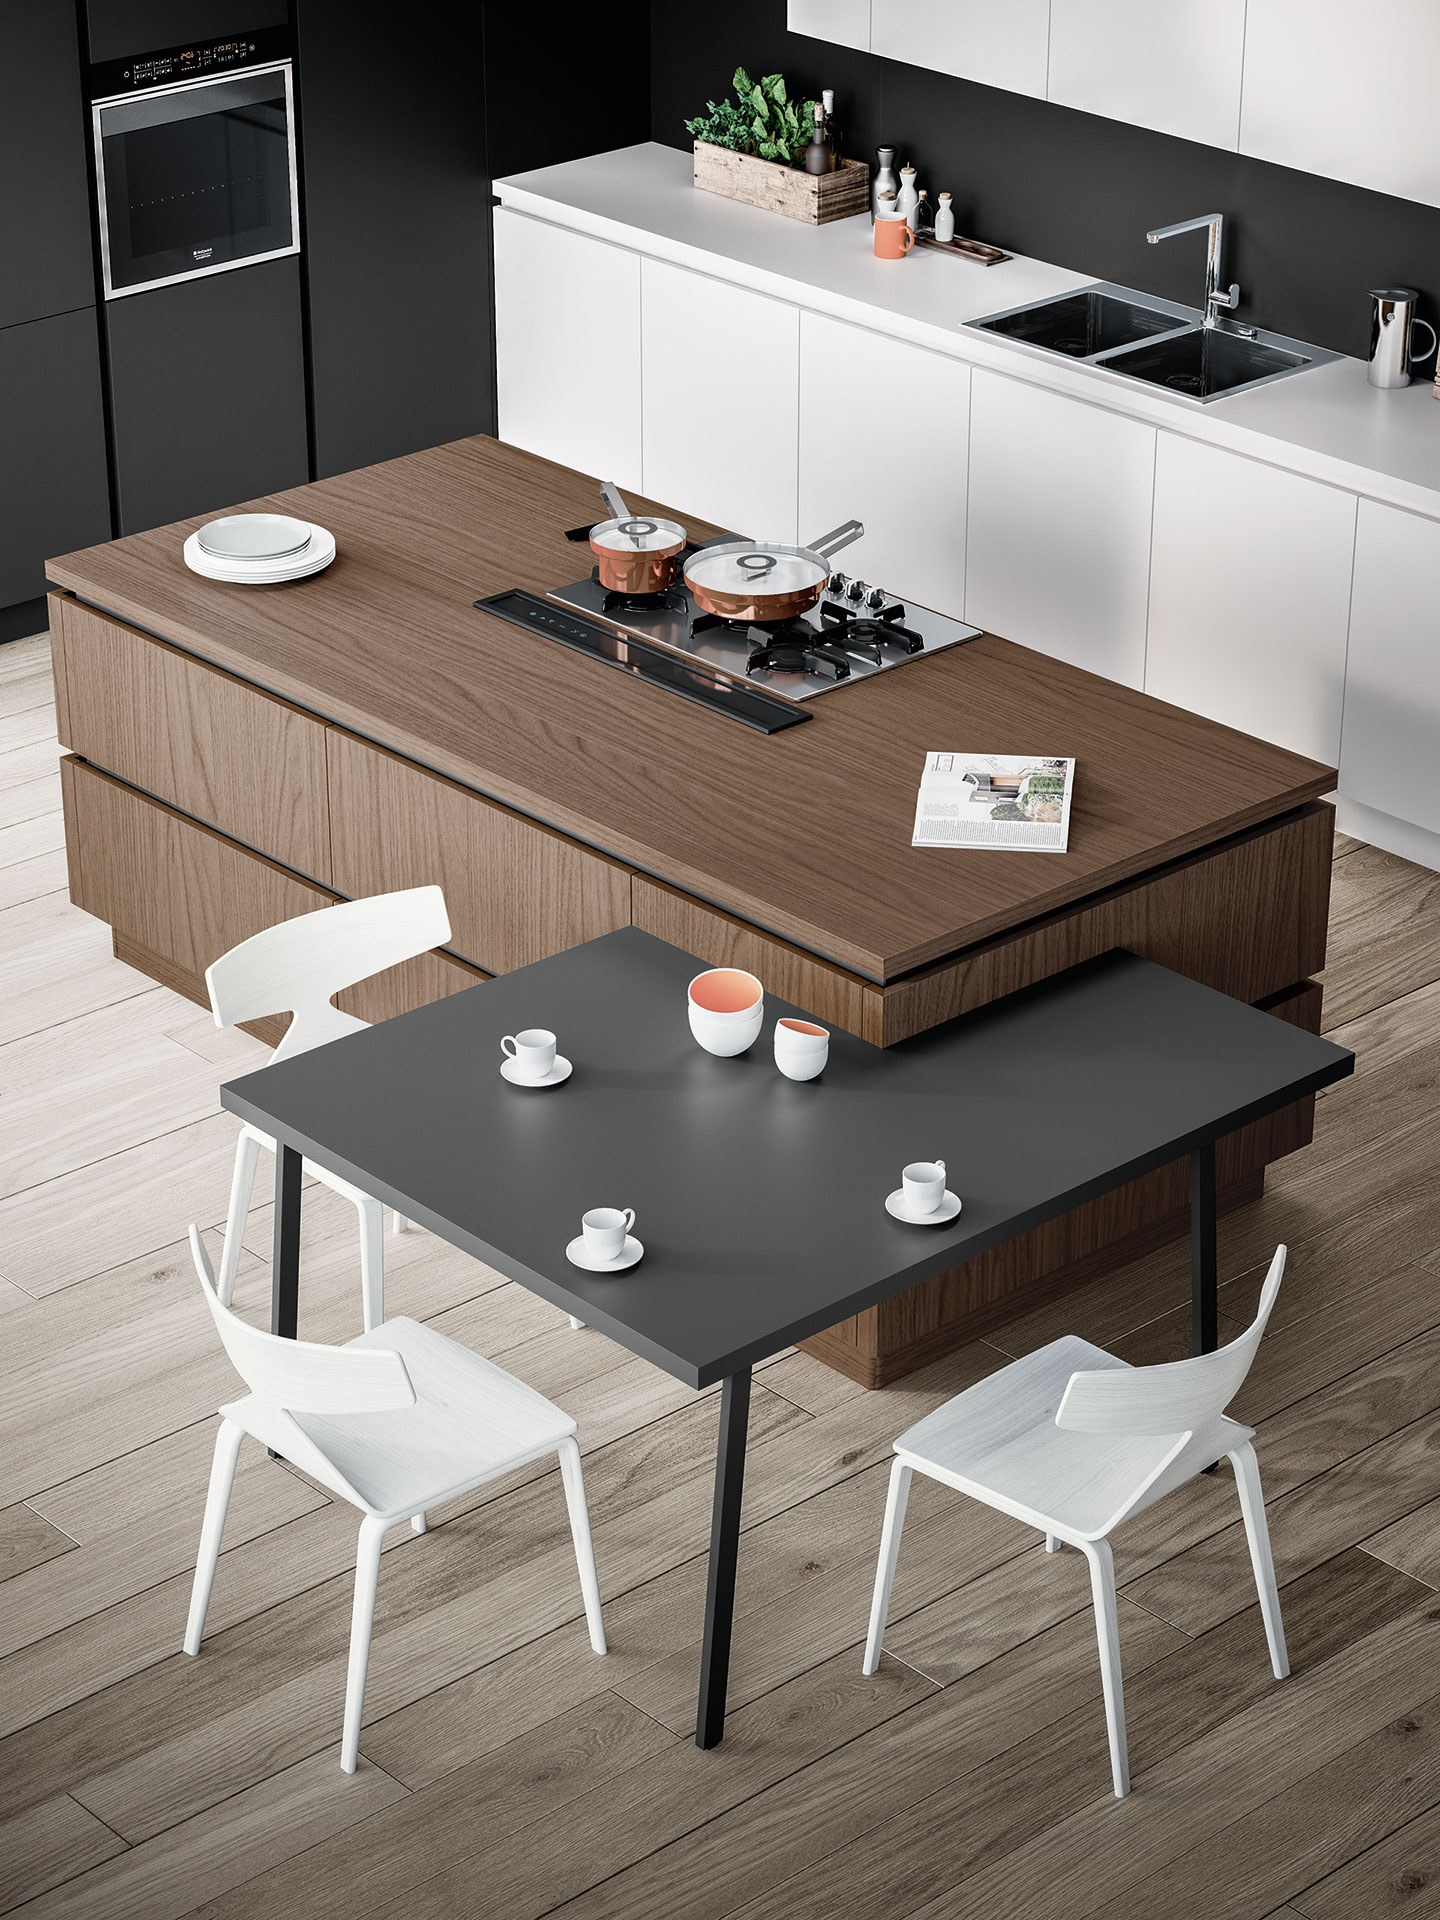 Un design originale per le cucine moderne antares for Design cucina